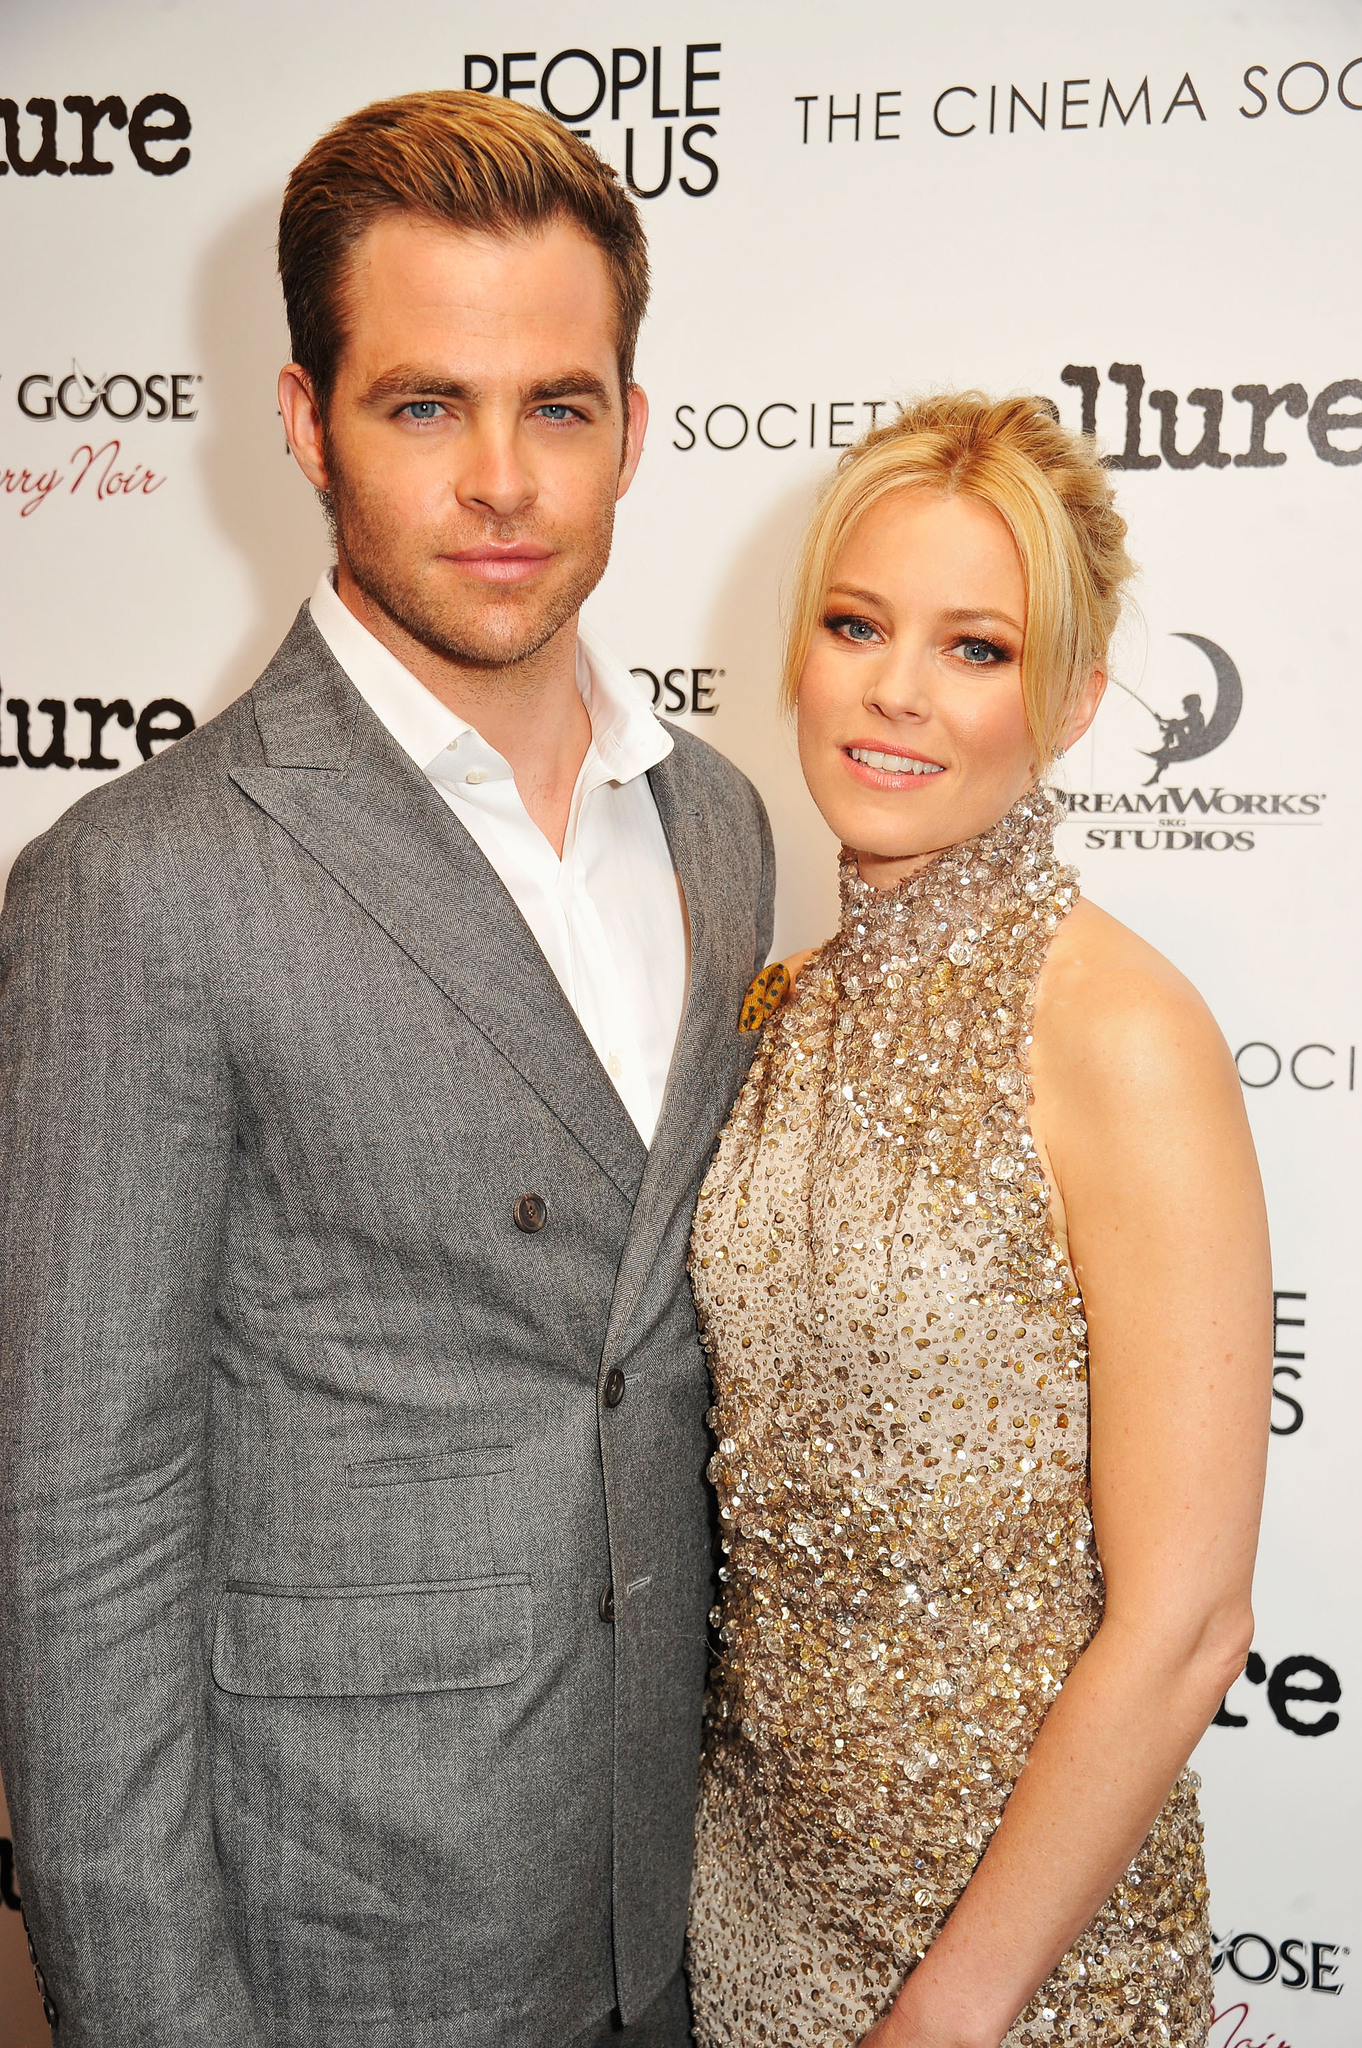 Elizabeth Banks and Chris Pine at an event for People Like Us (2012)